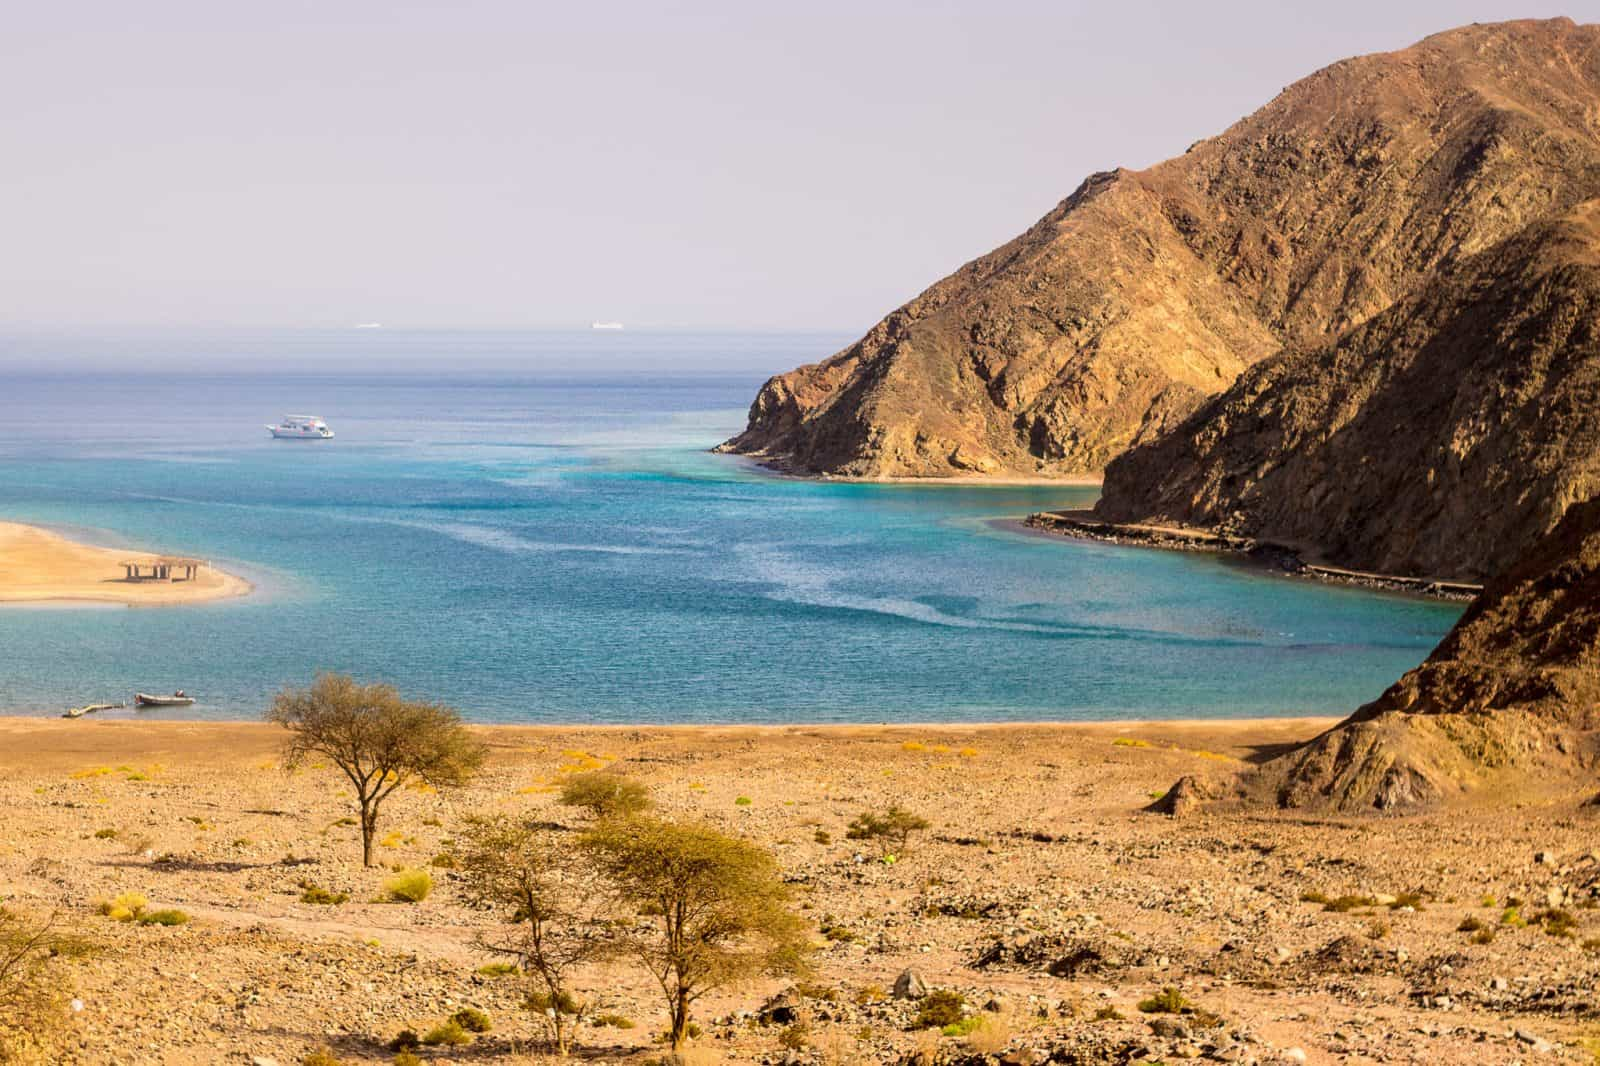 Views of the Red Sea from the Sinai coast of Egypt